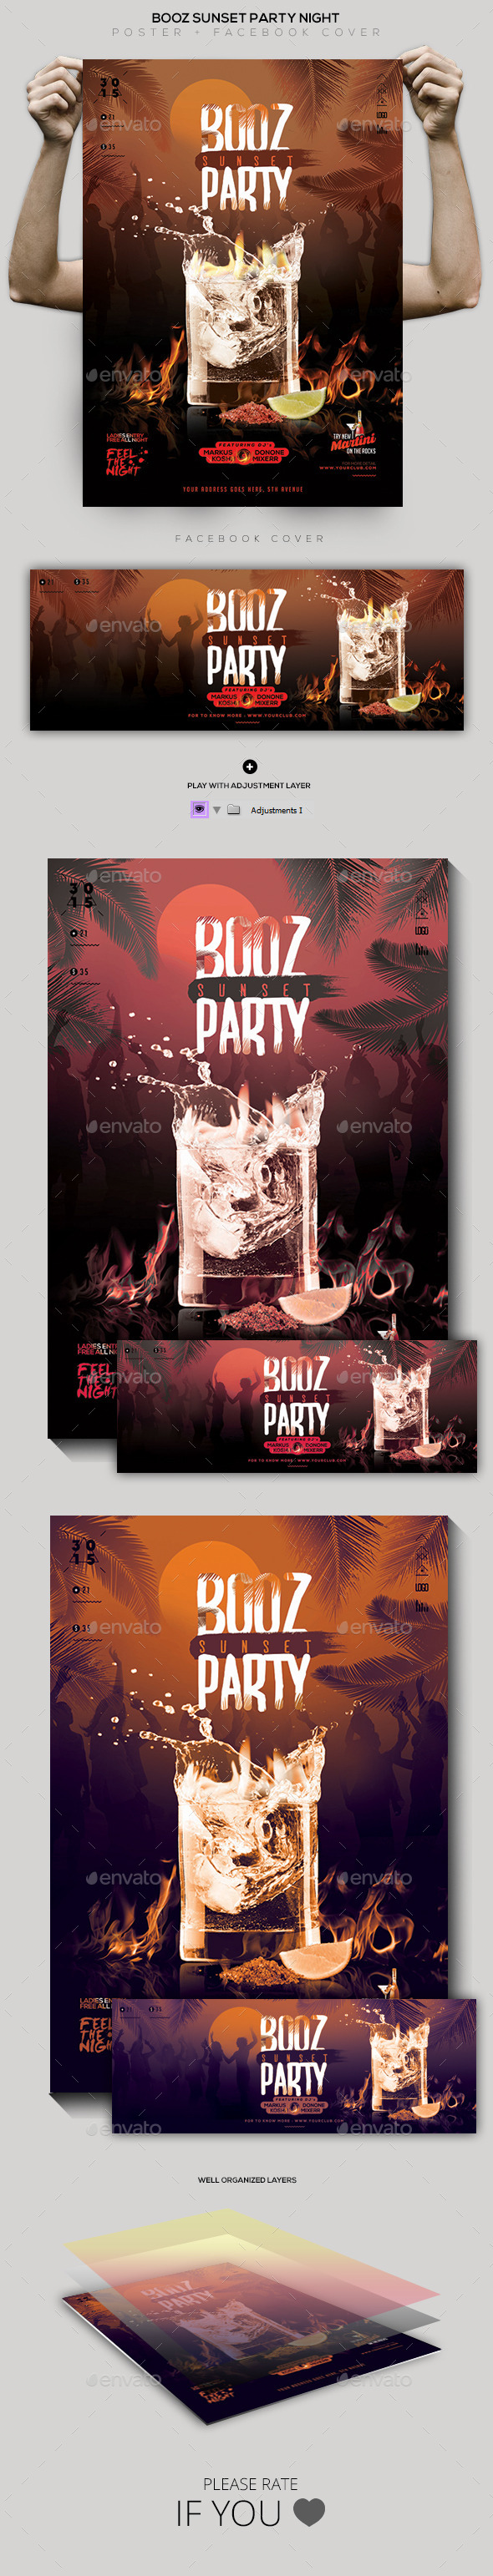 Booz Sunset Party Flyer / Poster / Facebook Cover - Clubs & Parties Events